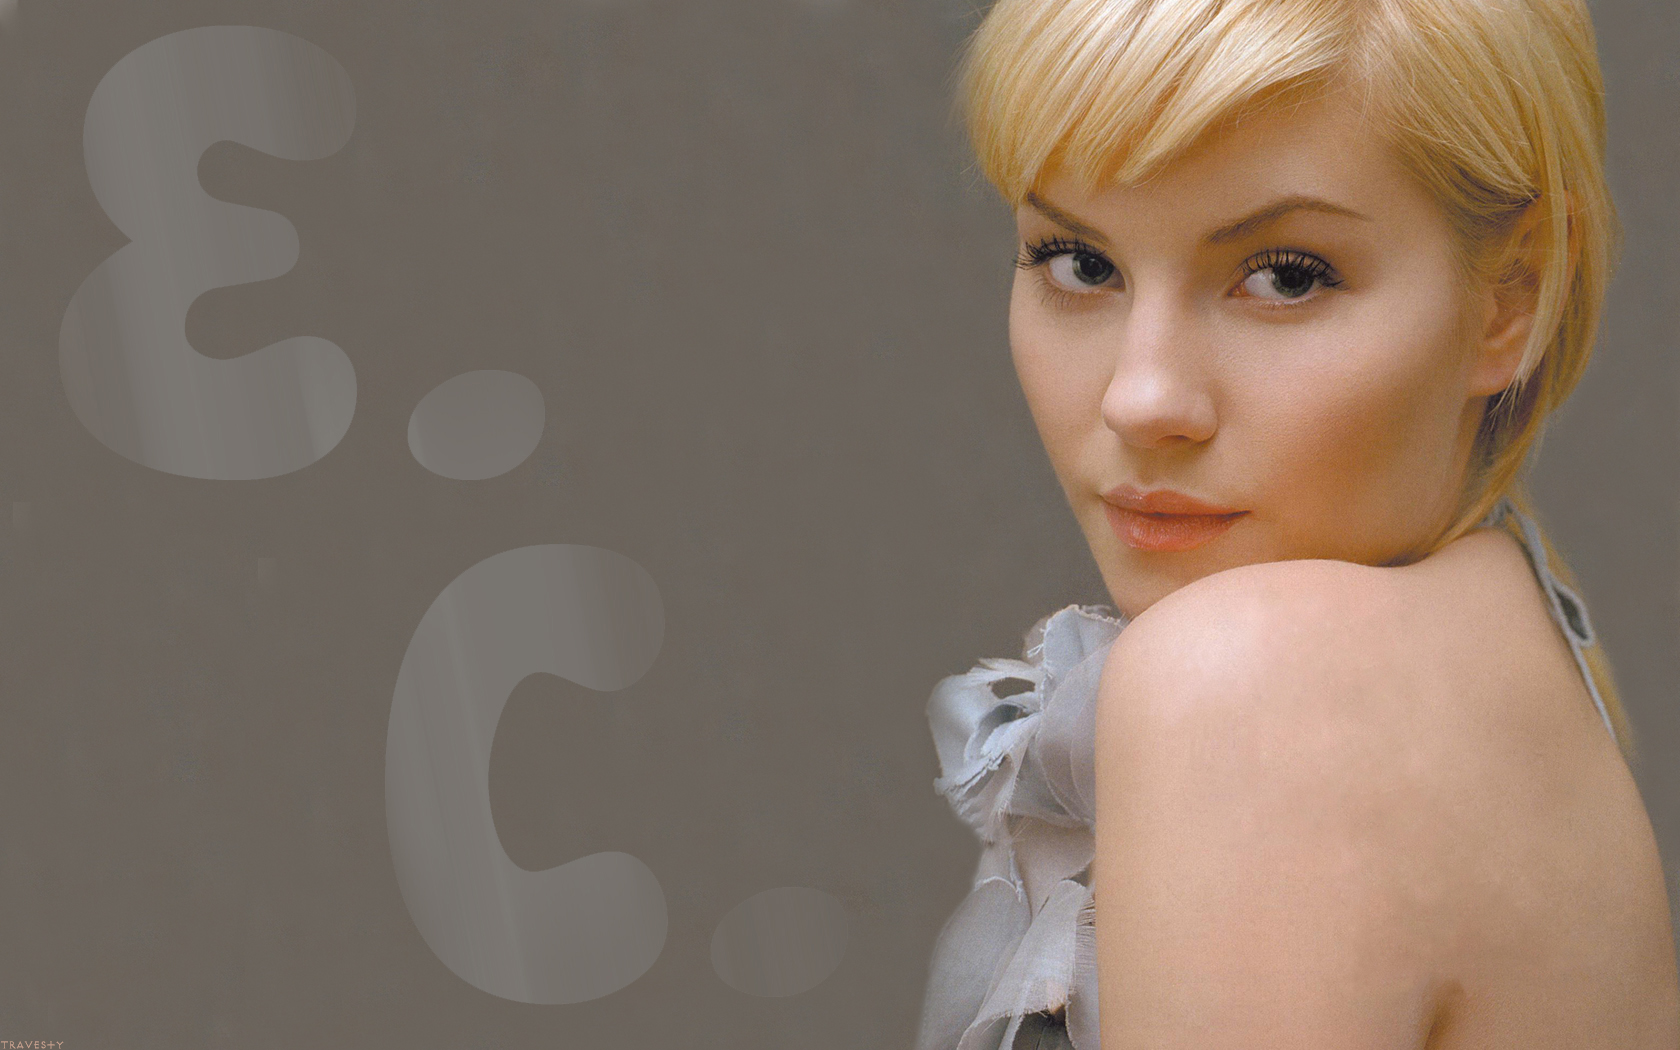 This Elisha cuthbert 8403 wallpaper viewed 2587 persons.